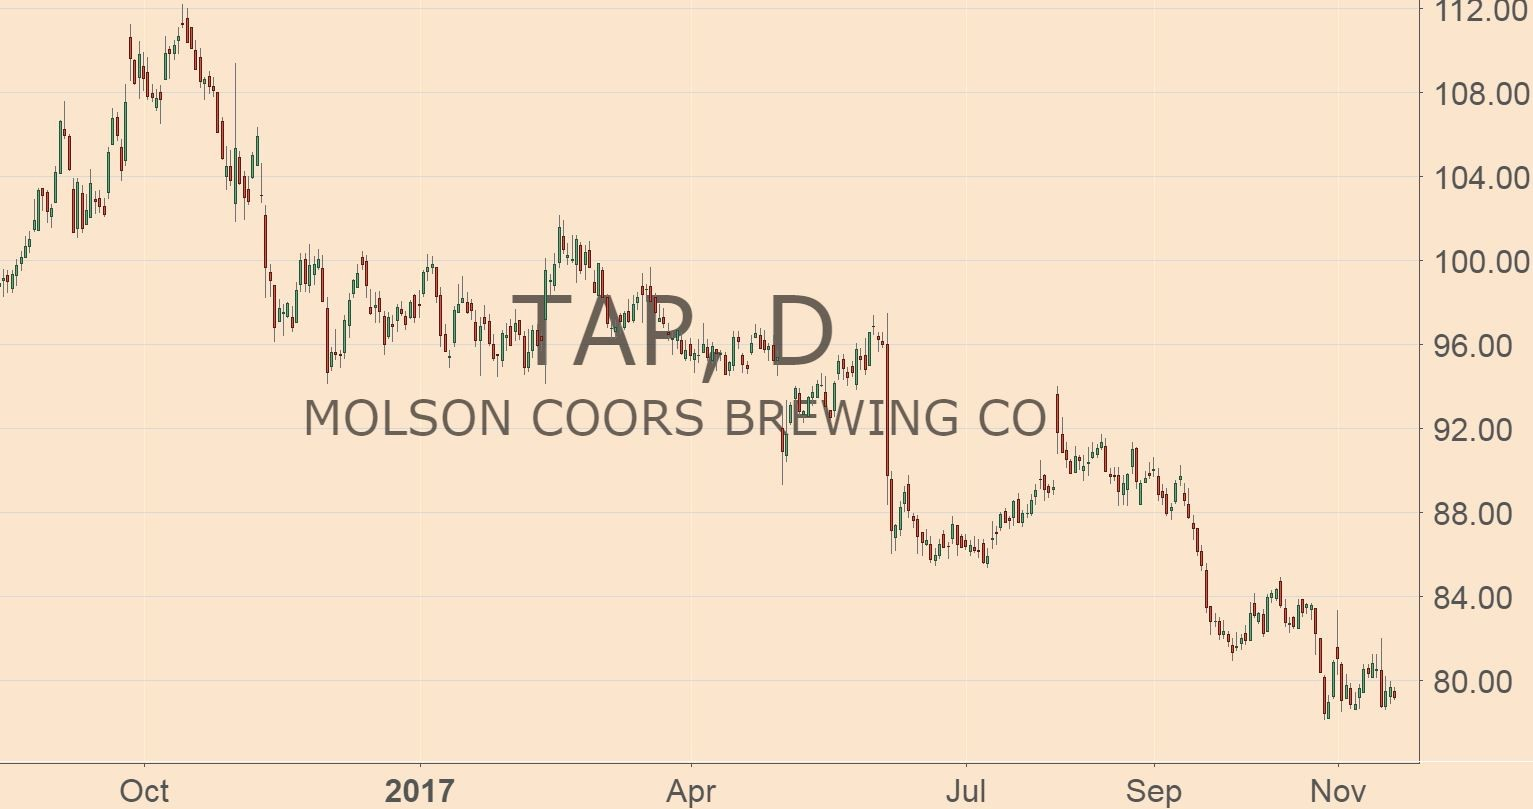 "U.S. beer companies have tried everything else to get their ""growth mojo"" back, but nothing's worked. Could a pivot into pot help? We're about to find out."